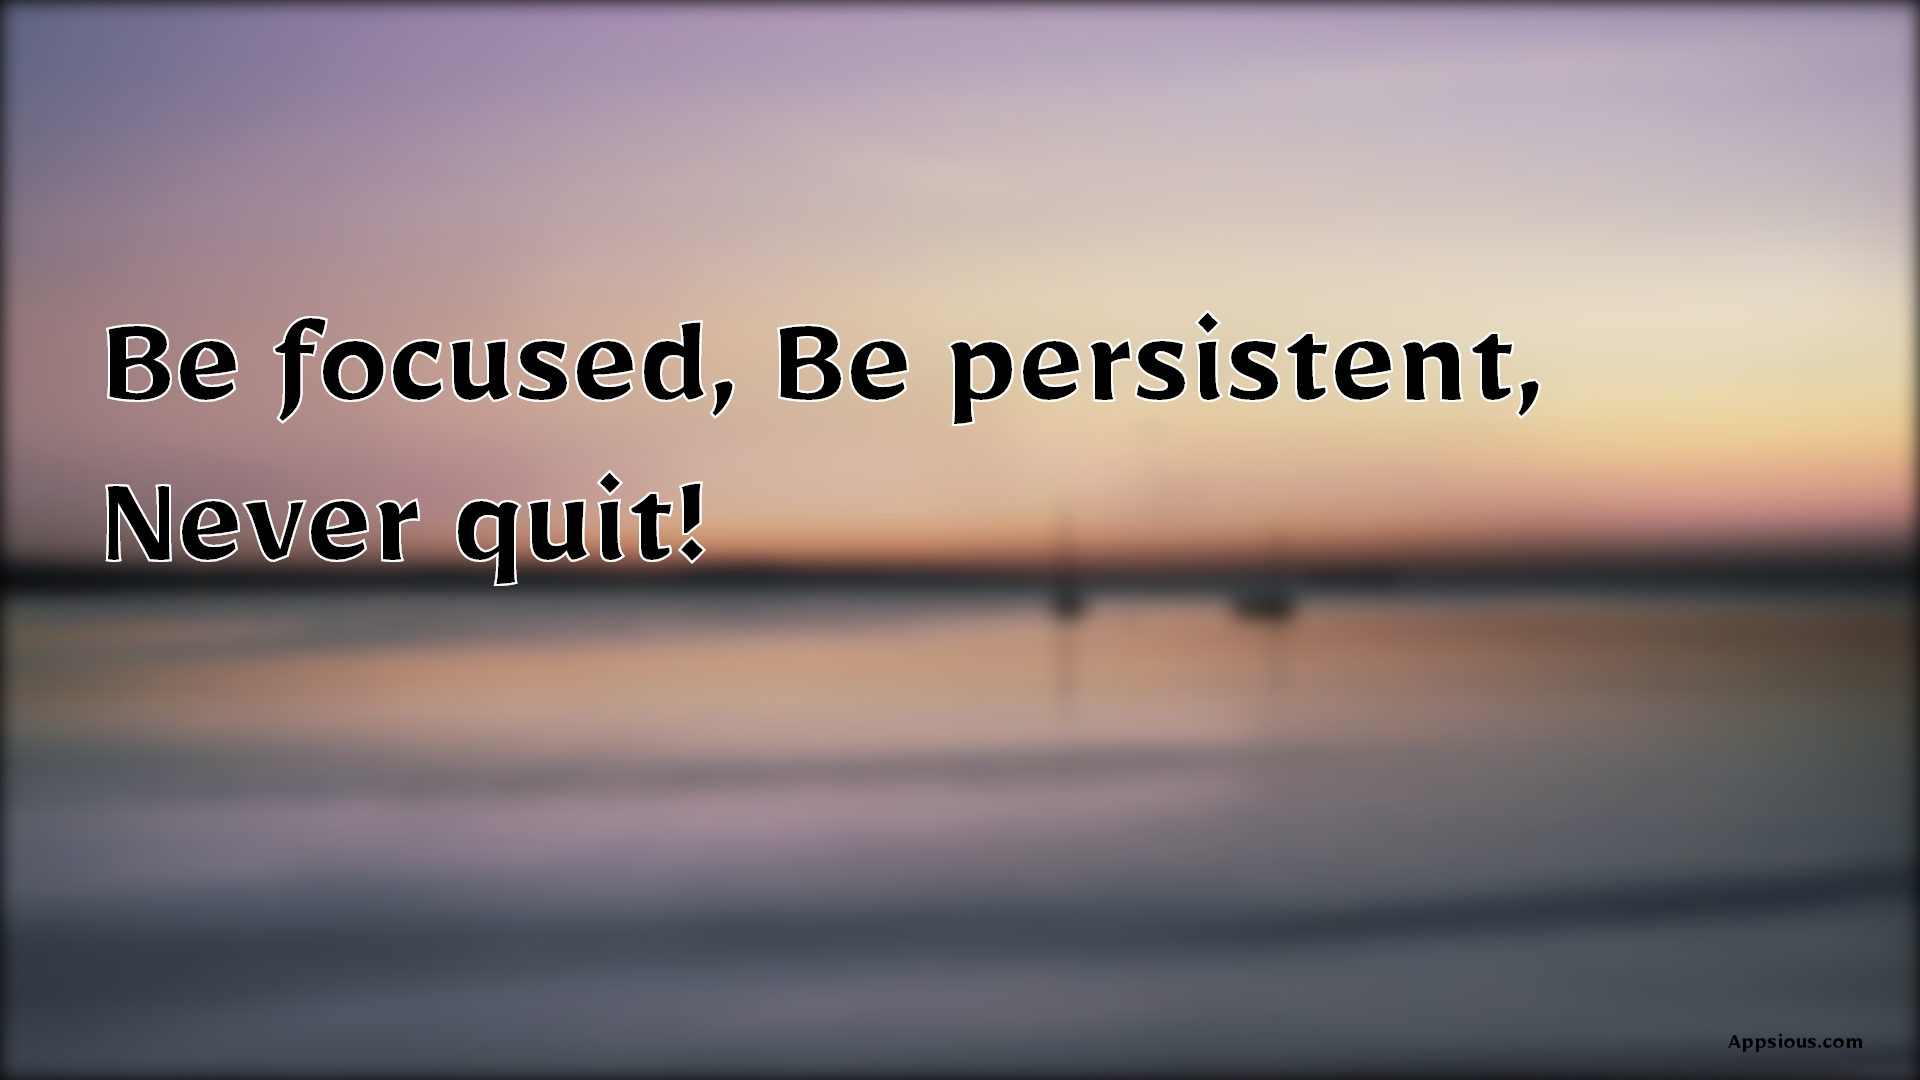 Be focused, Be persistent, Never quit!